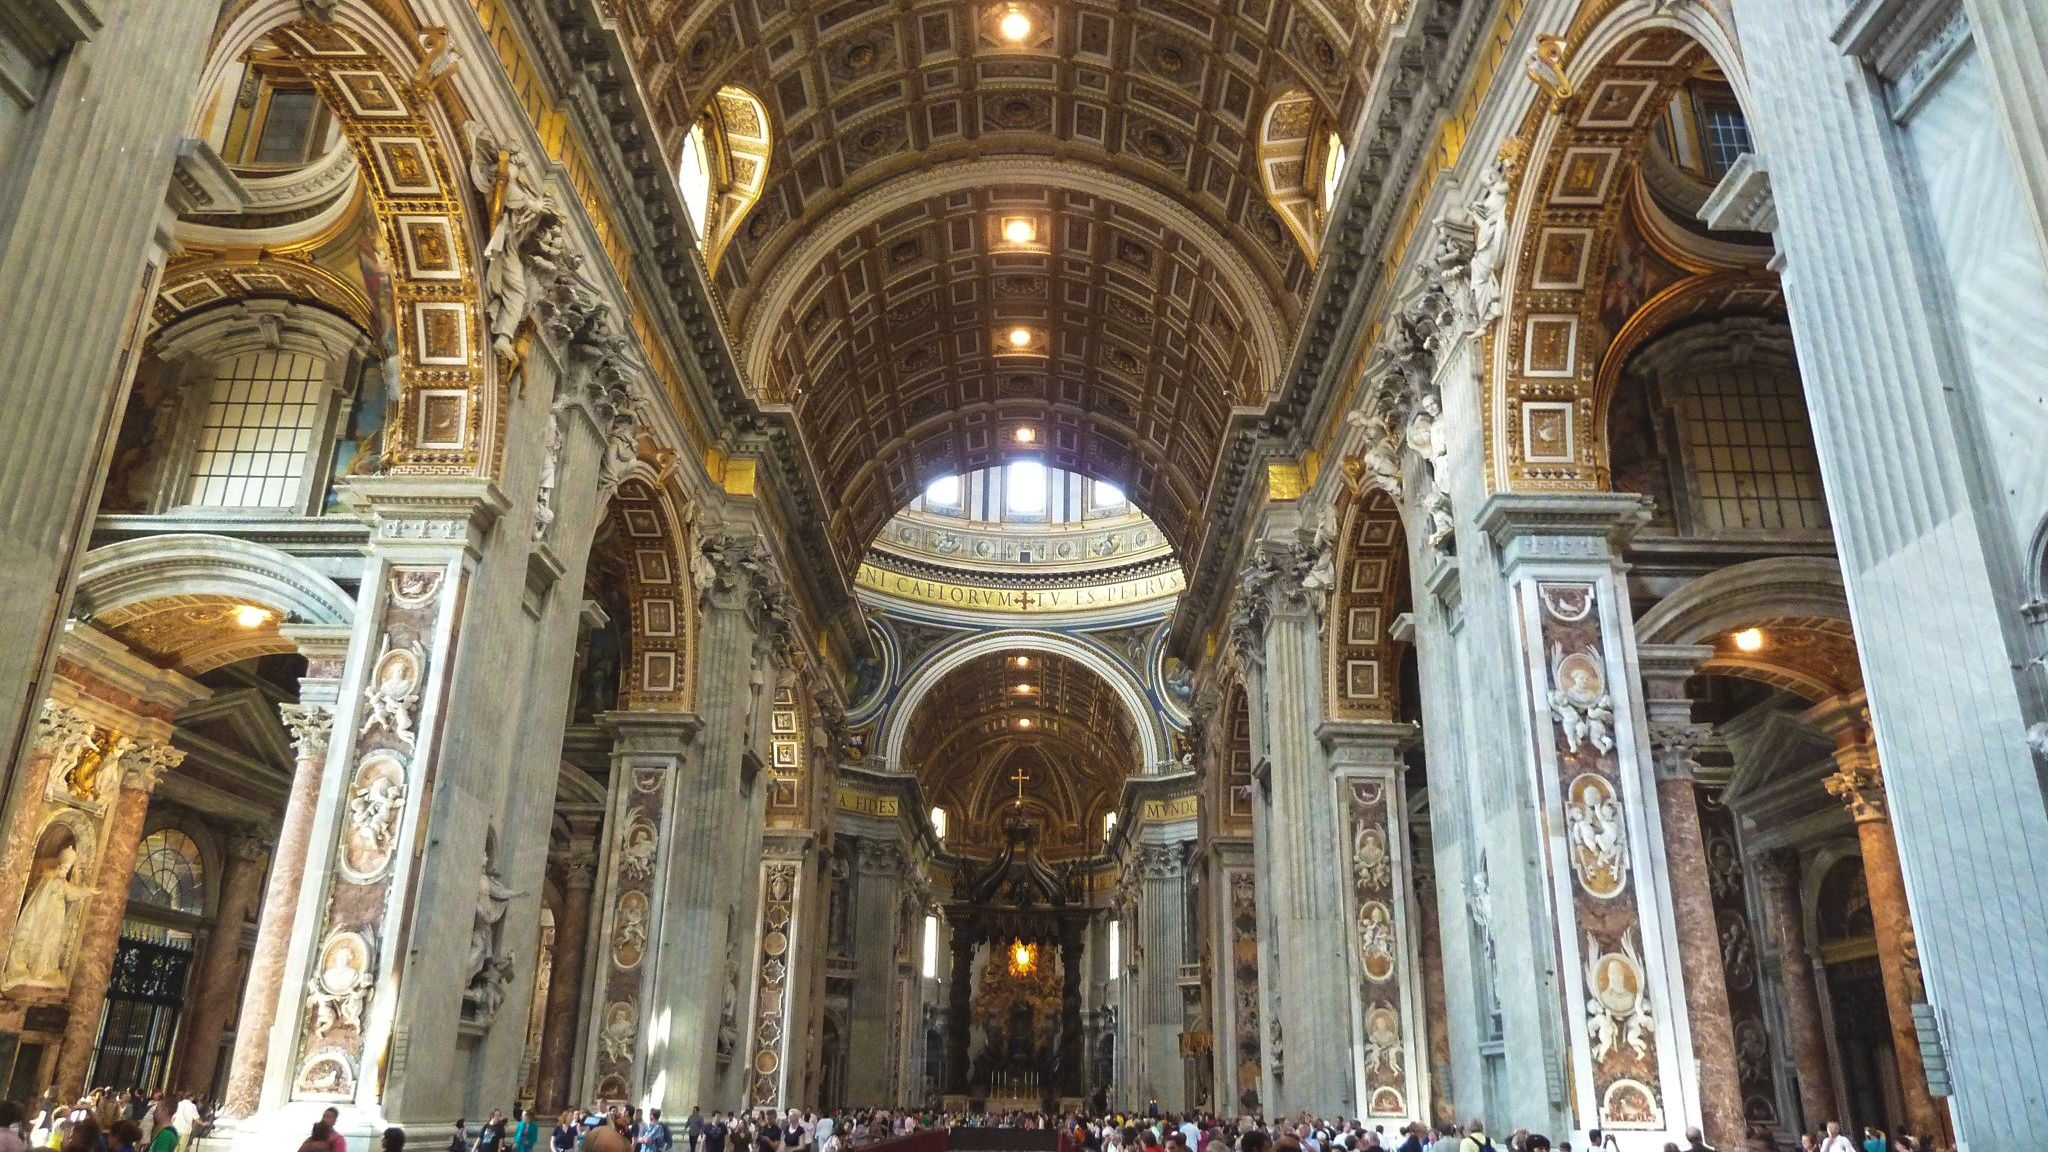 Interior view of detailed architecture in St. Peter's Basilica.